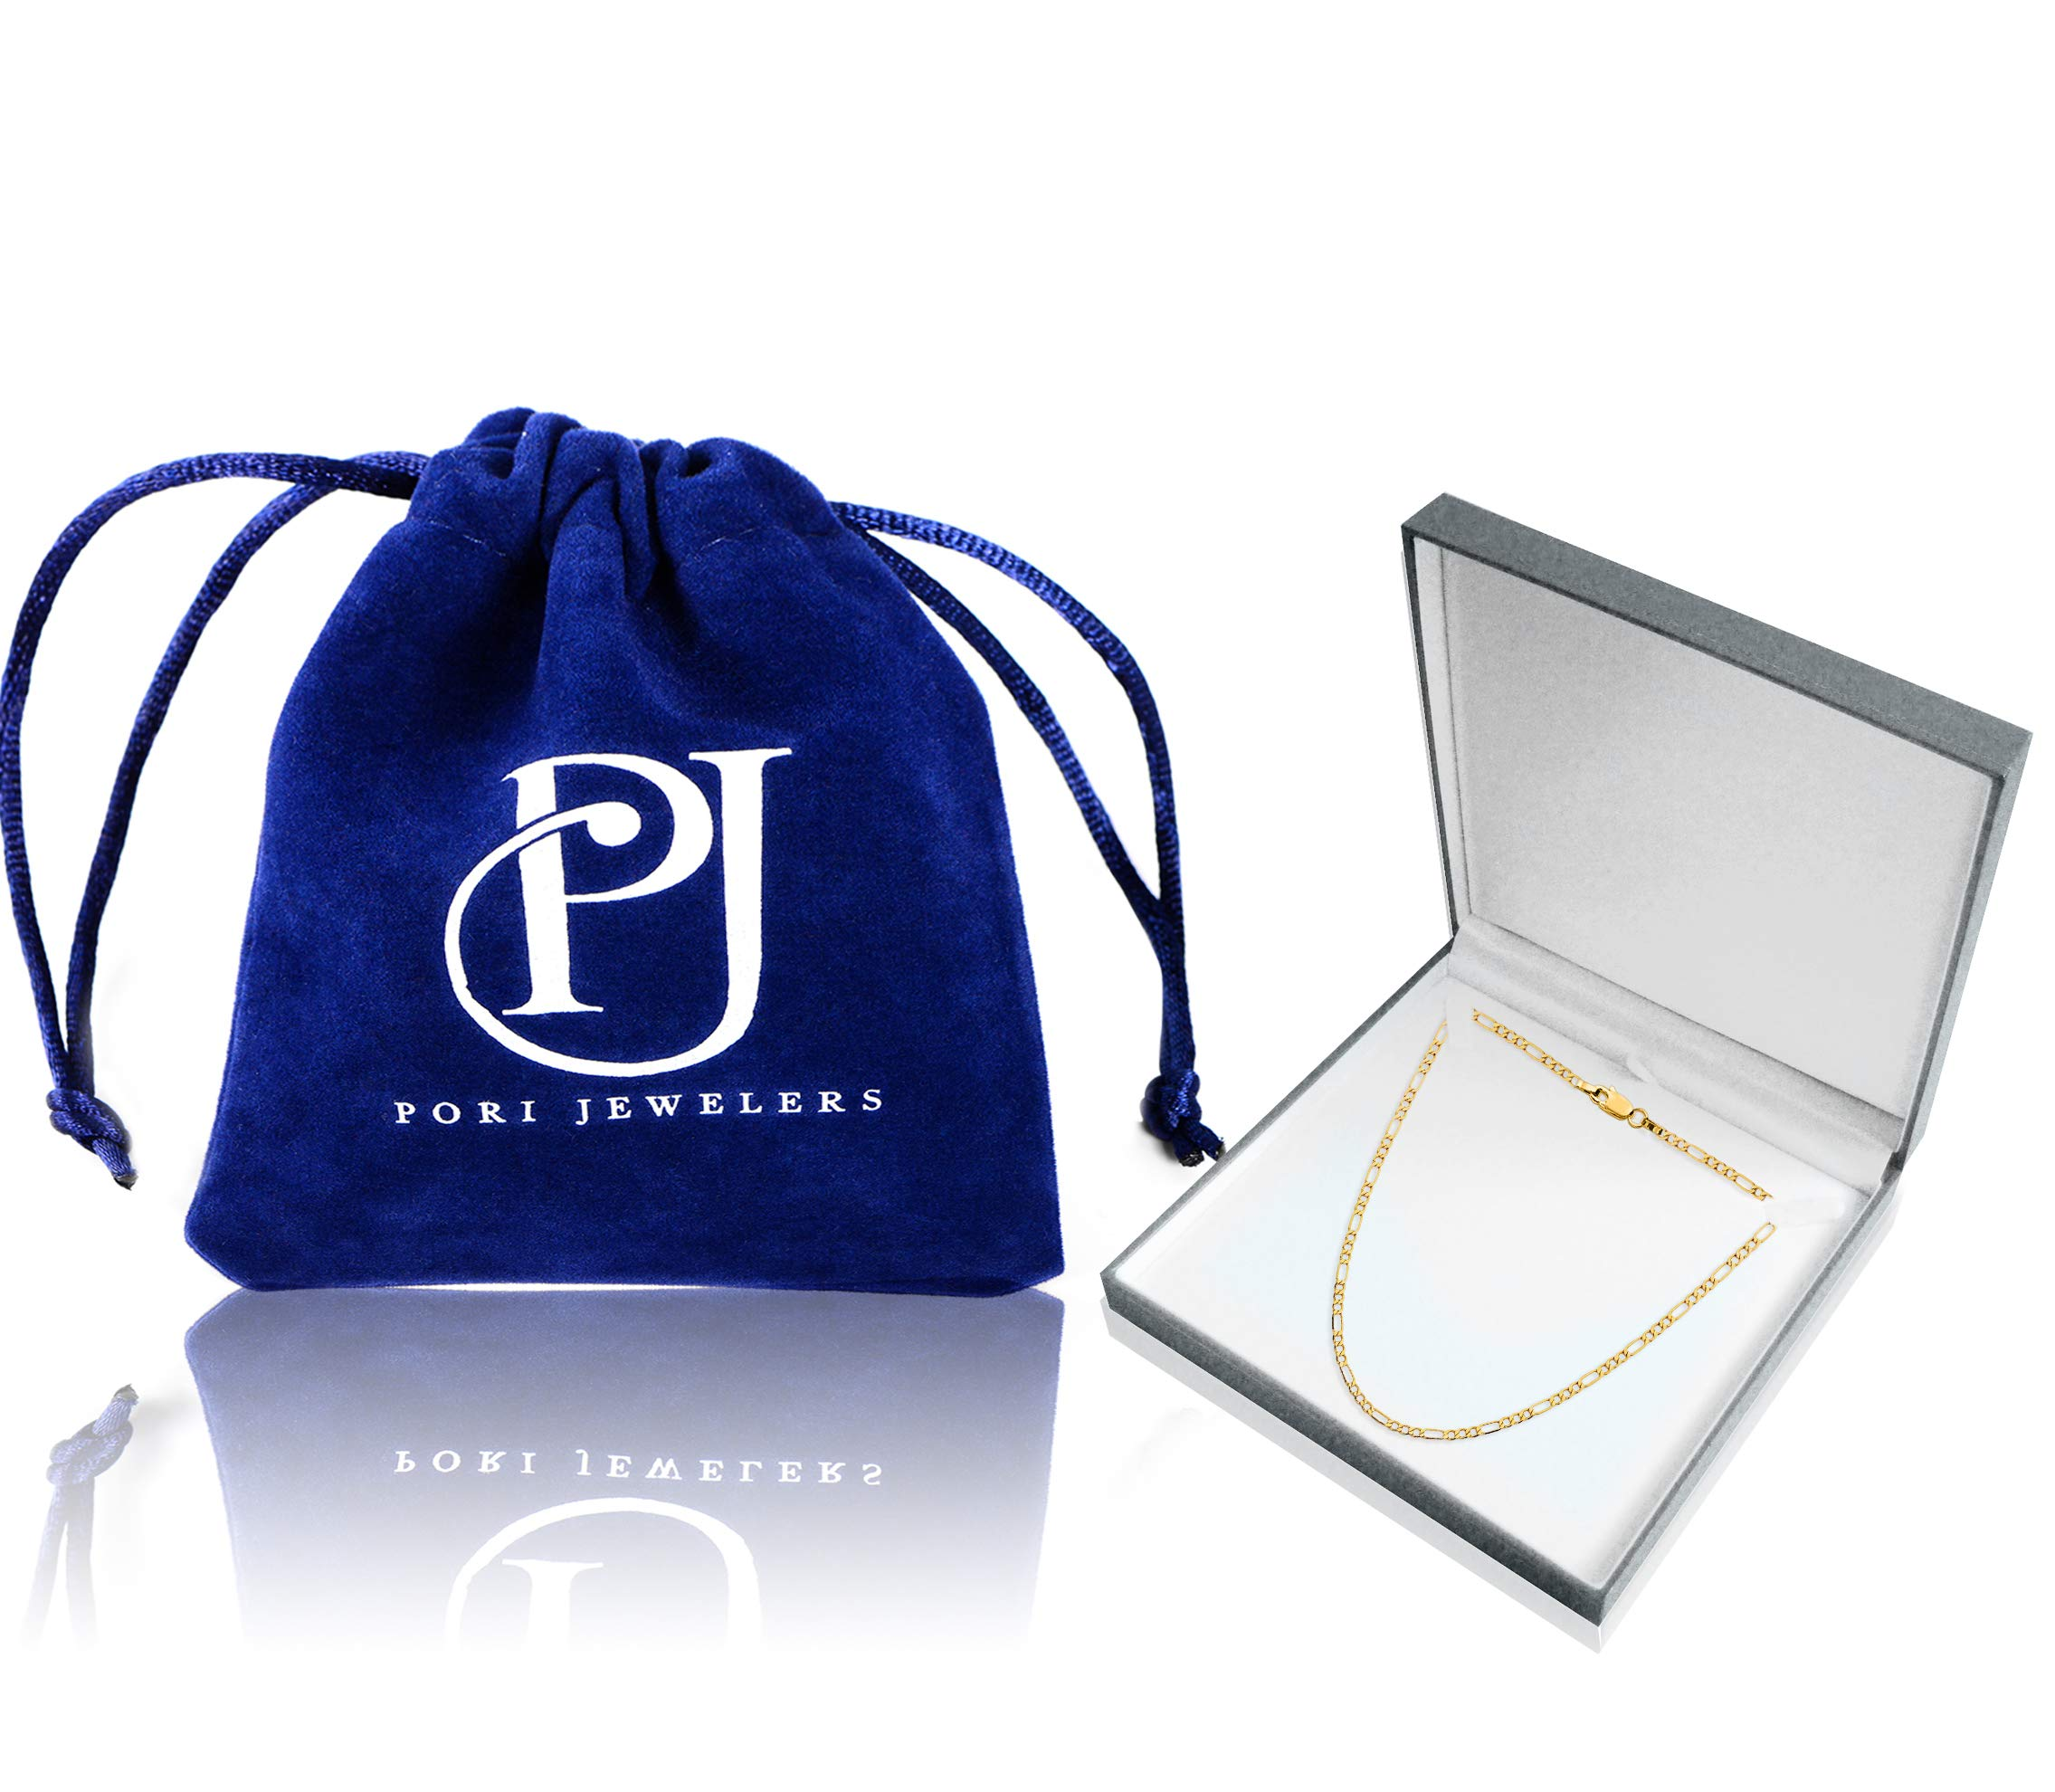 14K Yellow Gold 3.5mm Figaro Link Chain Necklace- Made In Italy- Multiple Lengths Available (26.0)